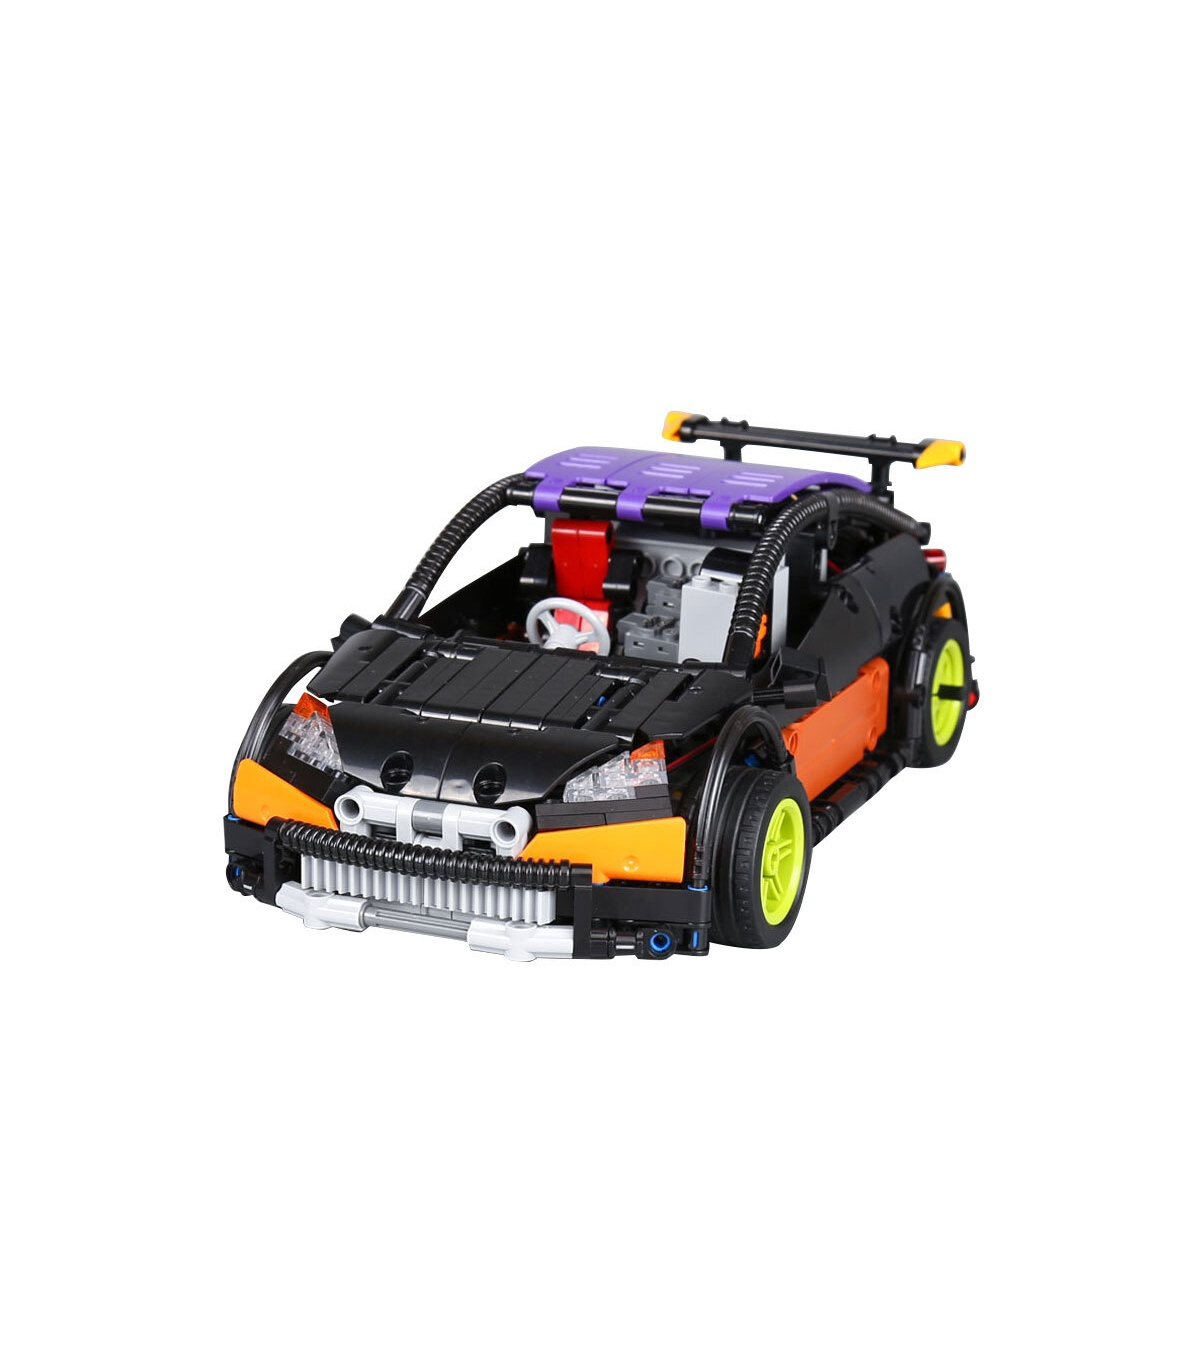 Custom MOC Remote Control Hatchback Type R Building Bricks Toy Set 640 Pieces, (MOC Custom Brick Sets, Compatible Building Blocks Toys Ideas, Building Bricks Meaning)